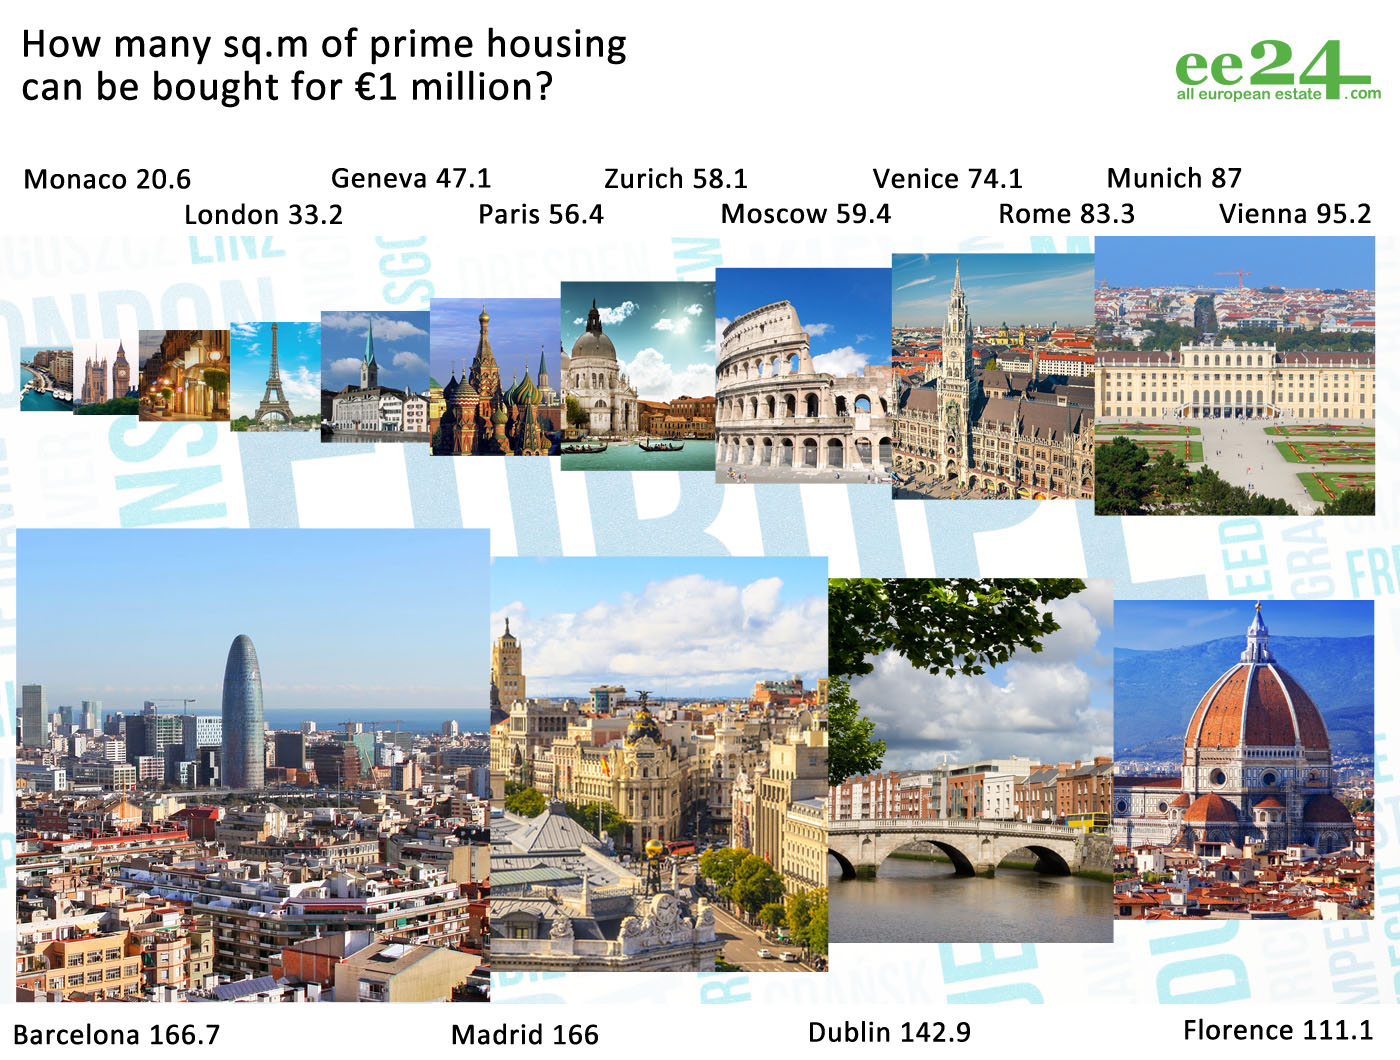 European real estate: what we will remember about 2014 | Photo 11 | ee24